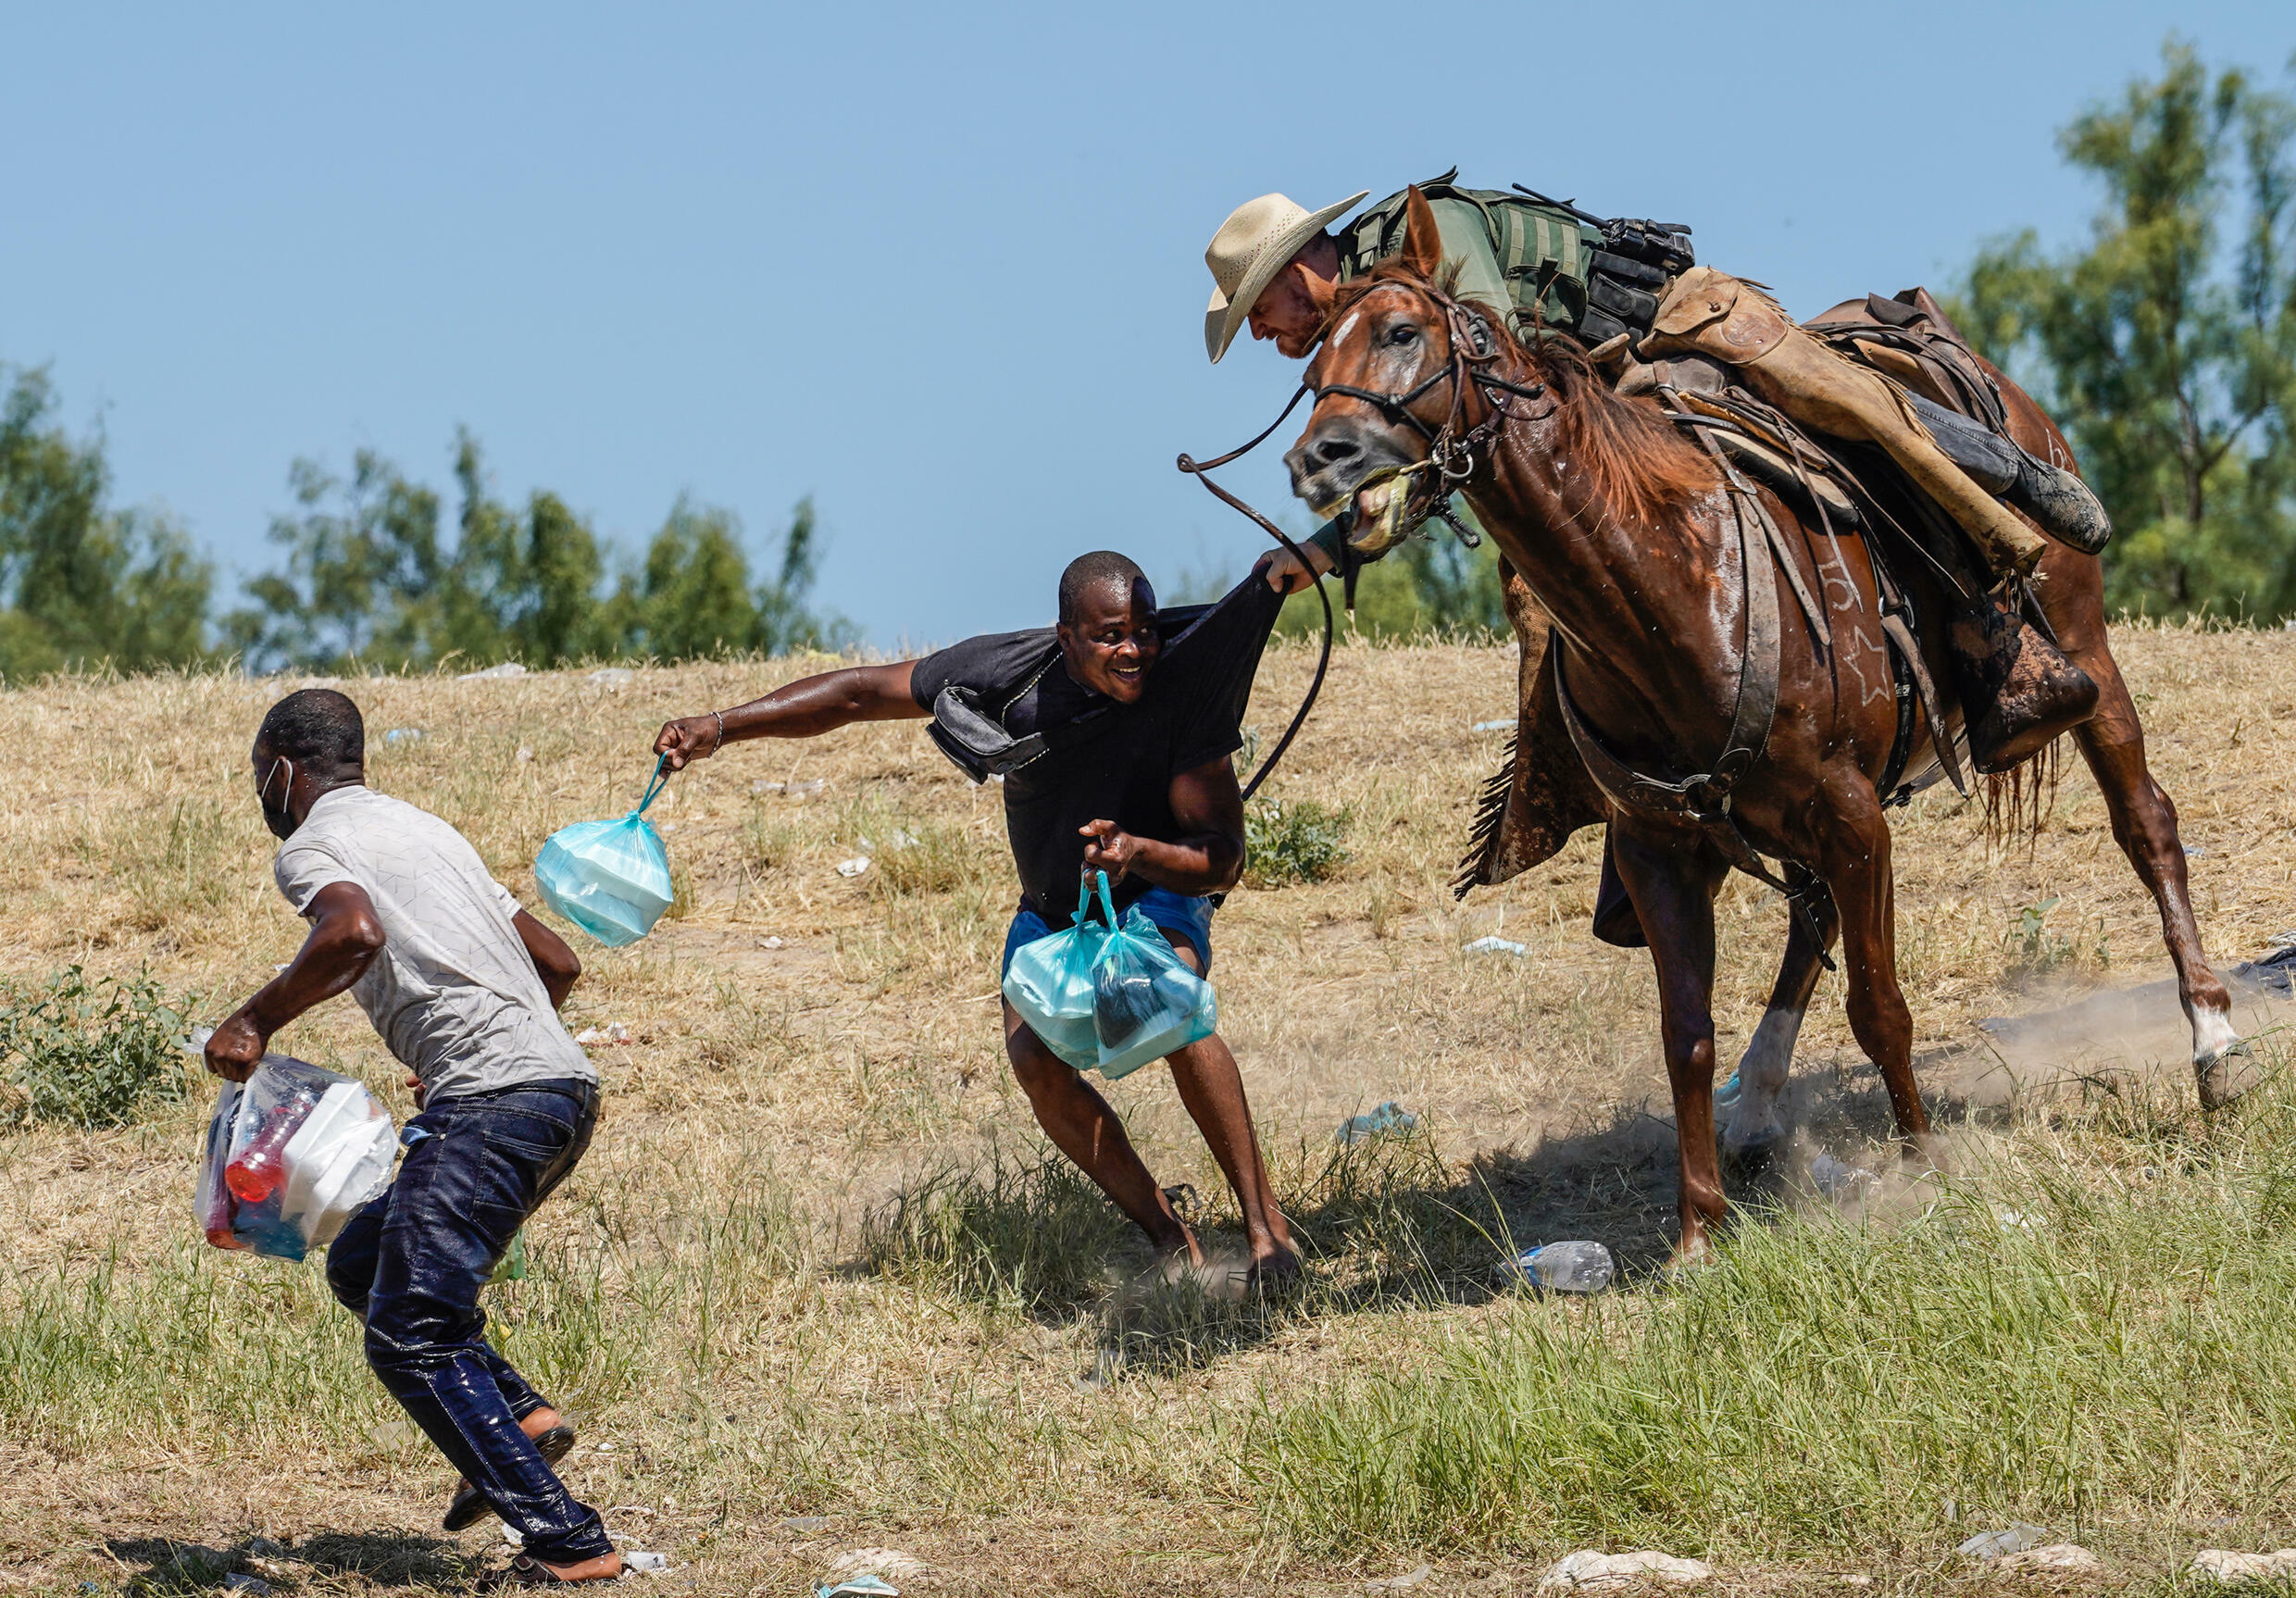 A United States Border Patrol agent on horseback tries to stop a Haitian migrant from entering an encampment on the banks of the Rio Grande near Del Rio, Texas